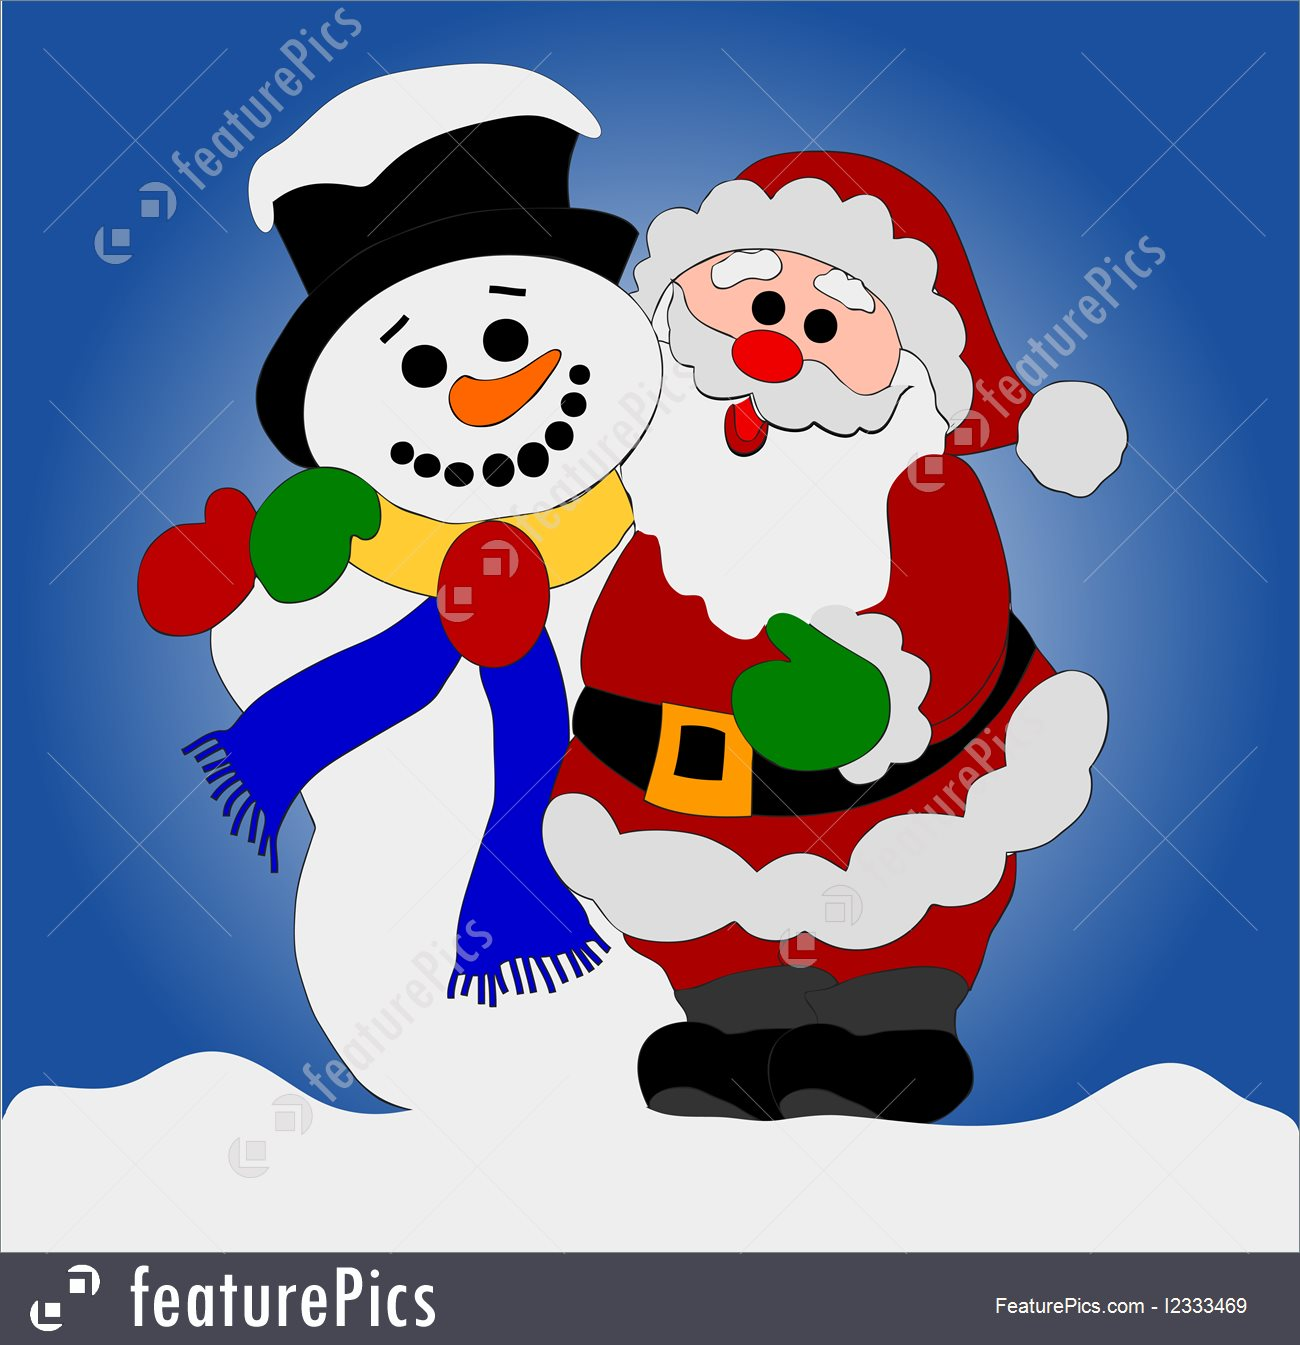 Illustration Of Santa Clause And Snowman.